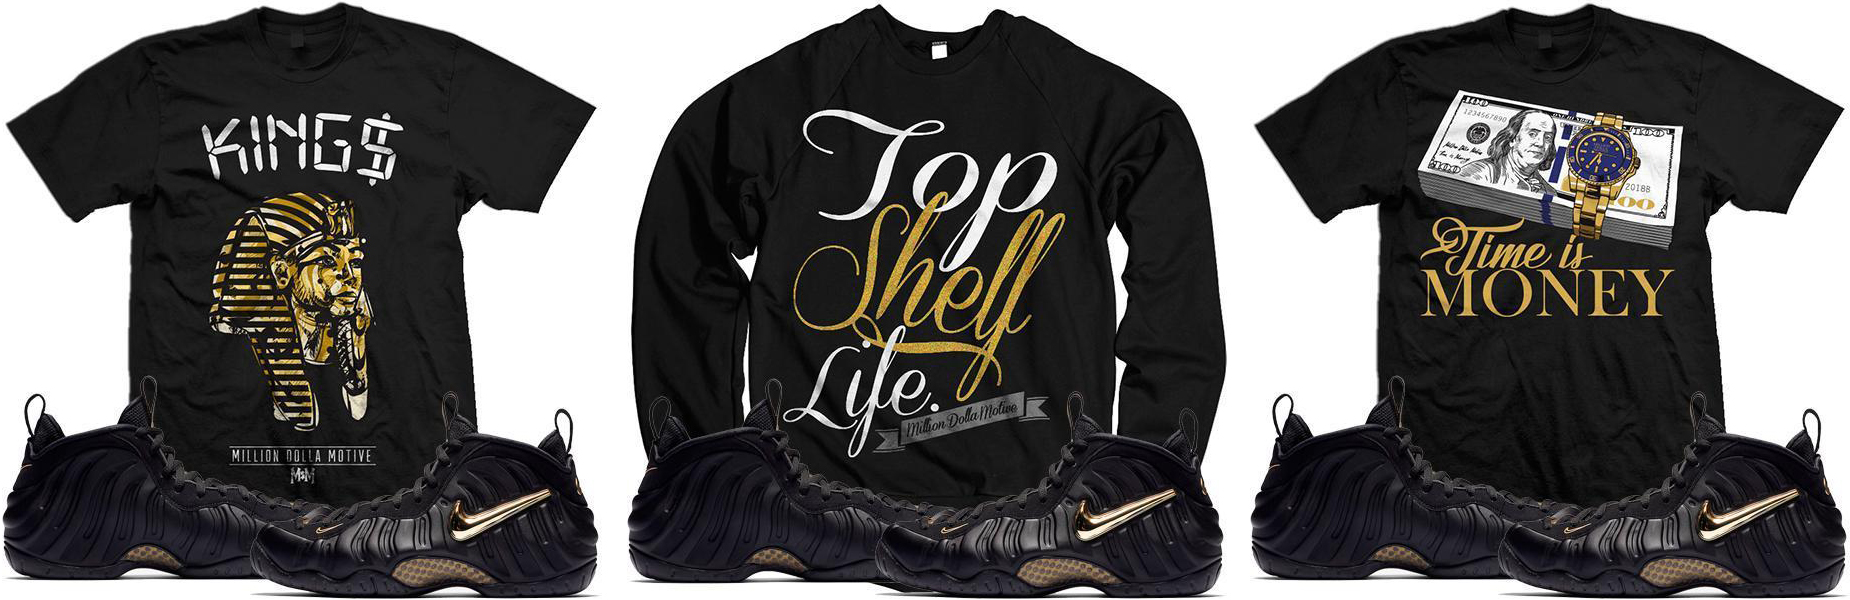 "110b88fa94539 foamposite-black-metallic-gold-sneaker-match-tee-shirts. Matching up with  Nike Air Foamposite Pro "" ..."